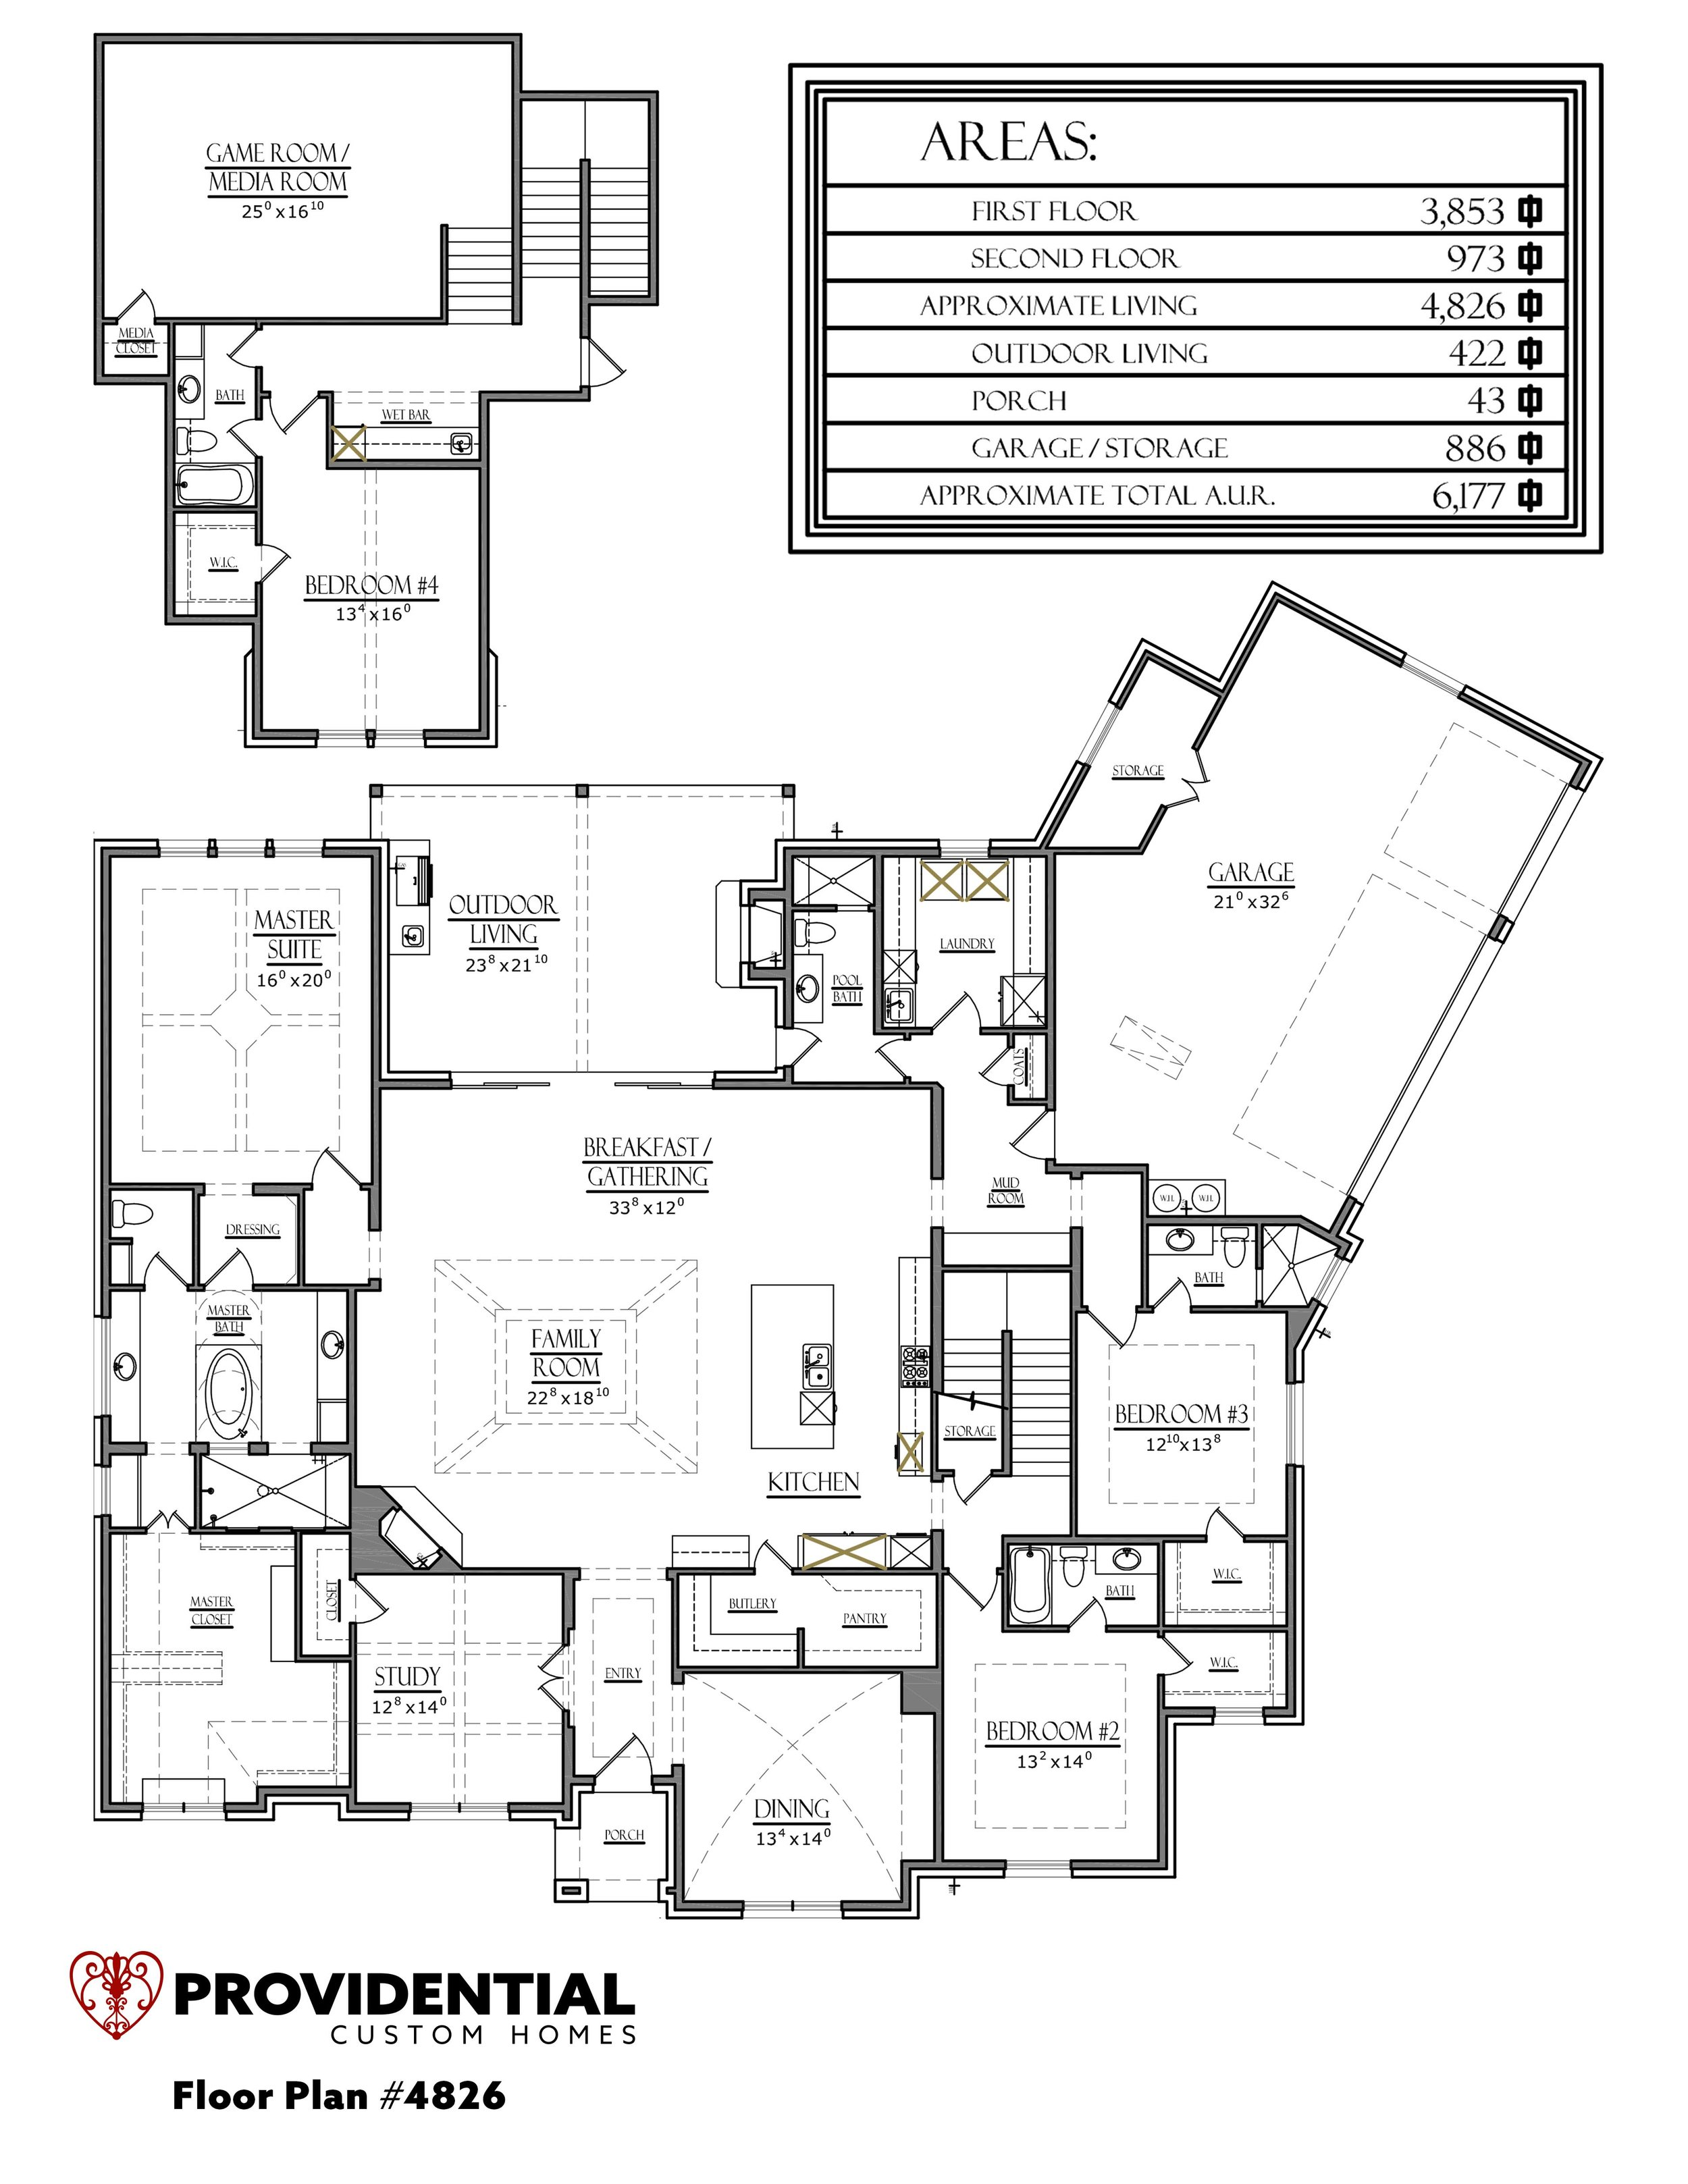 The FLOOR PLAN #4826.jpg